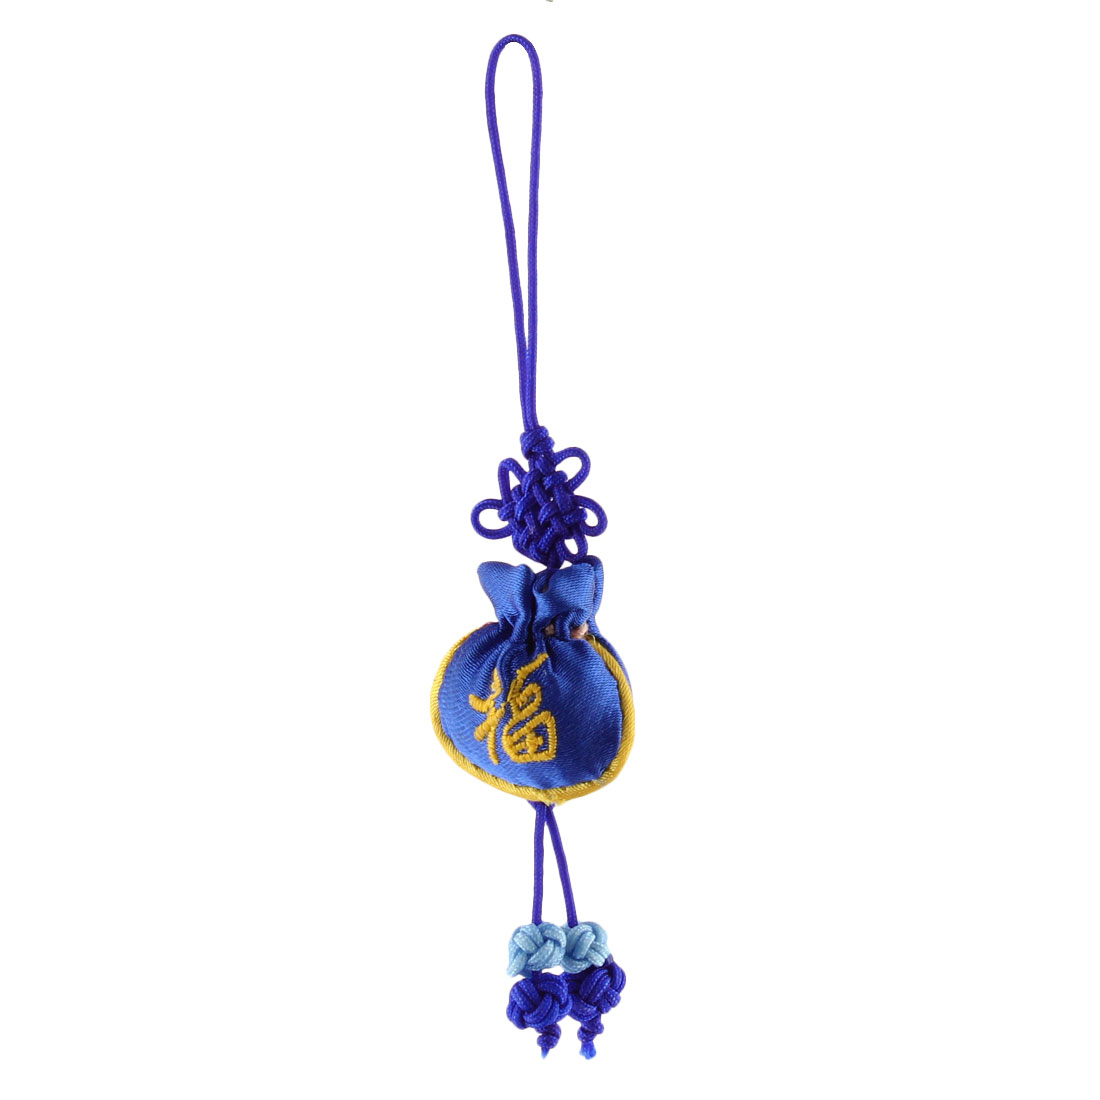 Household Chinese Mini Embroidery Luck Sachet Pendant Hanging Knot Dark Blue